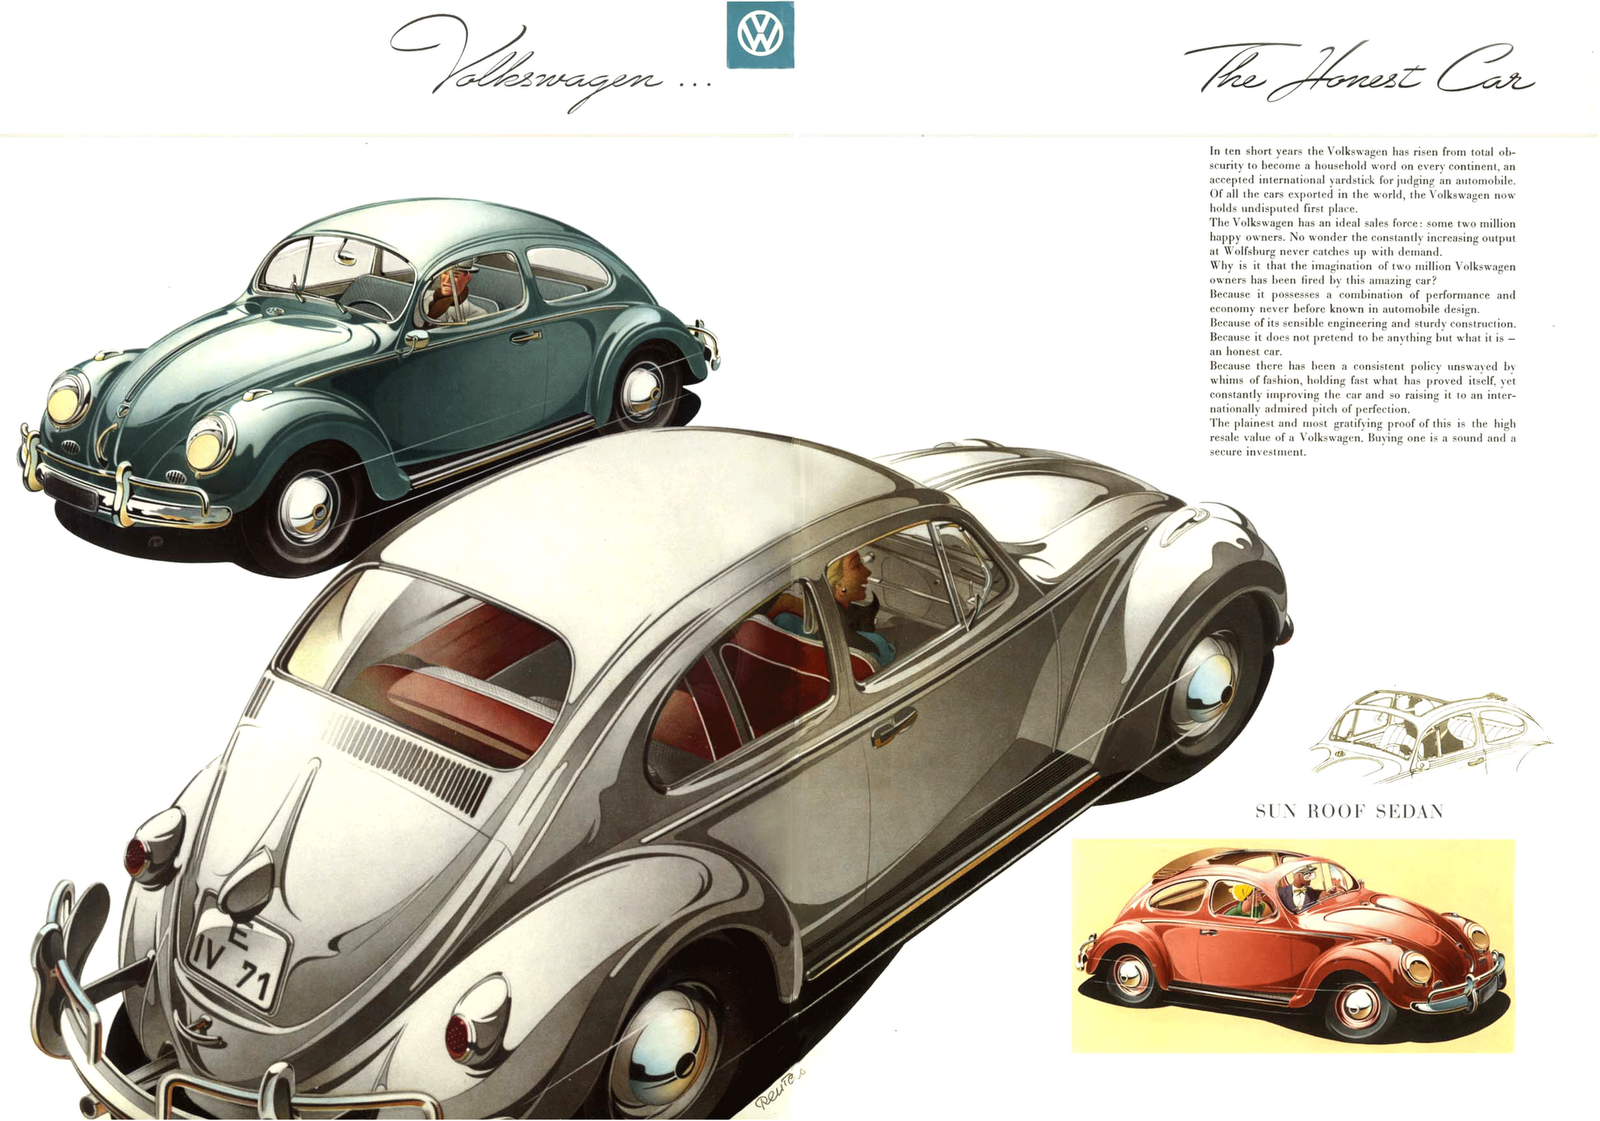 Condon Skelly | Classic Car Insurance: History of the VW Beetle